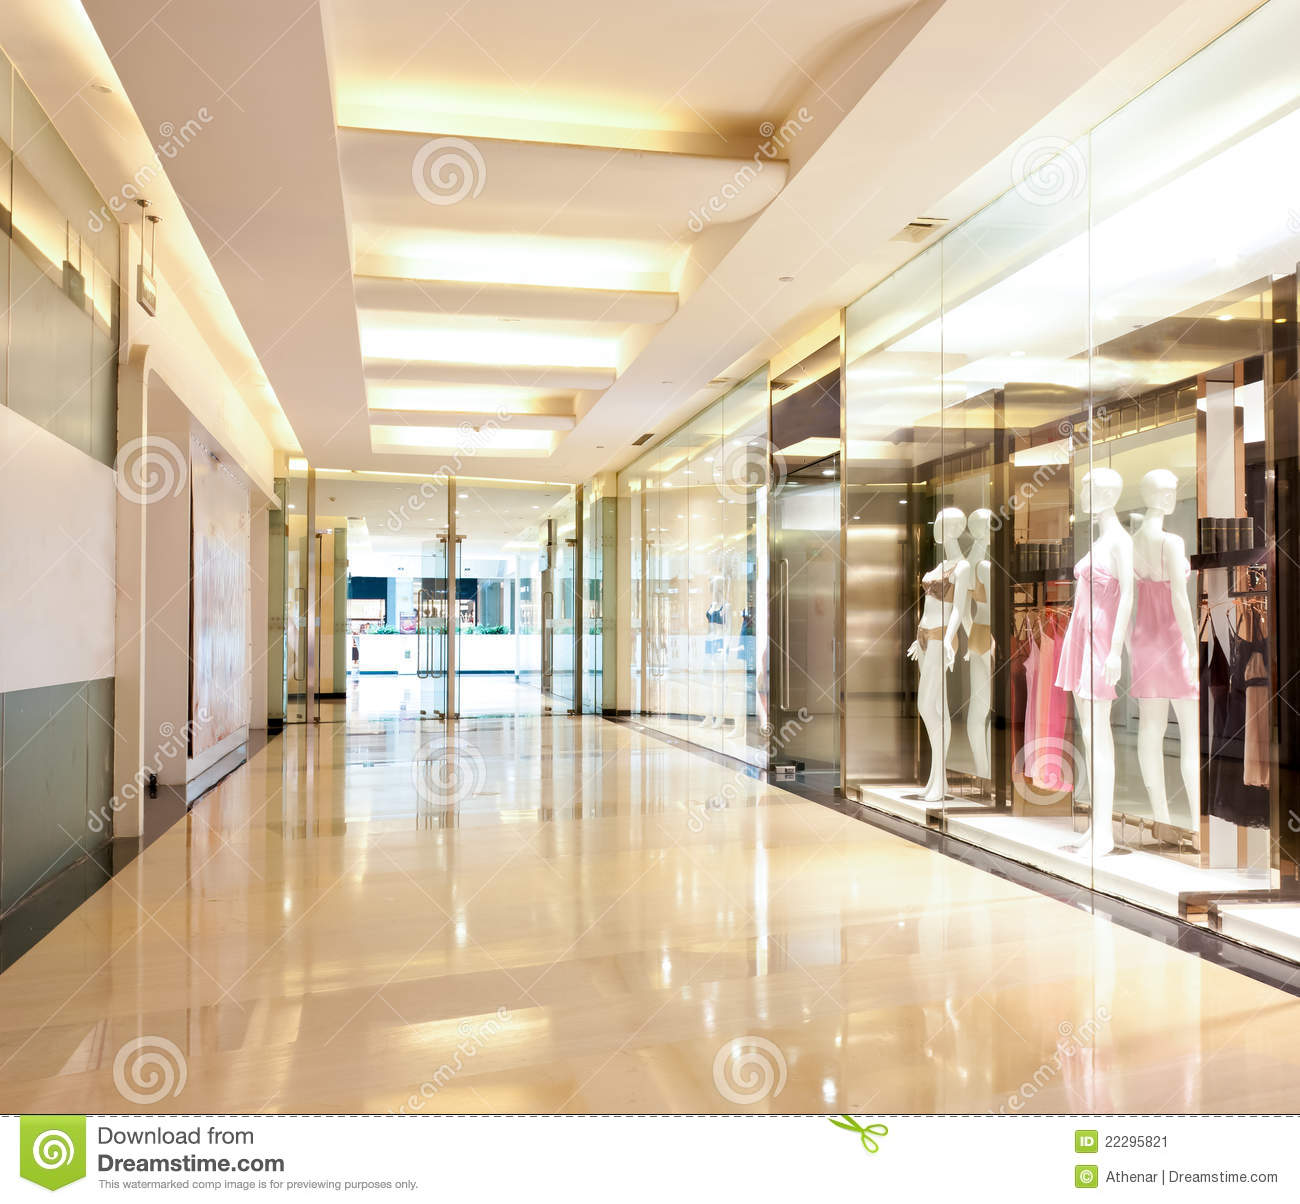 Commercial Building Floor Plans Free Lingerie Shop In The Mall Corridor Stock Illustration